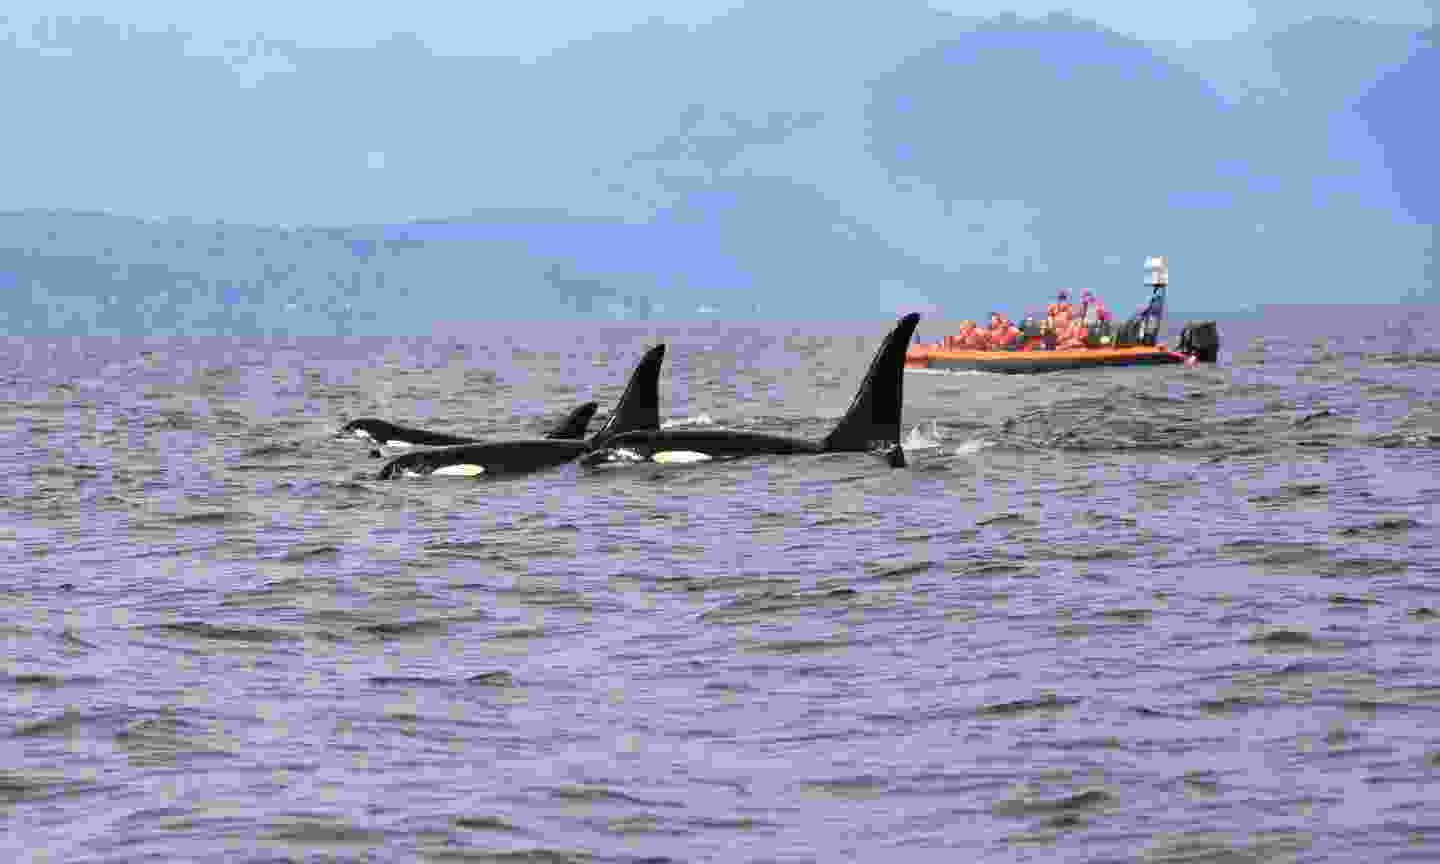 Whale watching off the coast of Vancouver (Dreamstime)